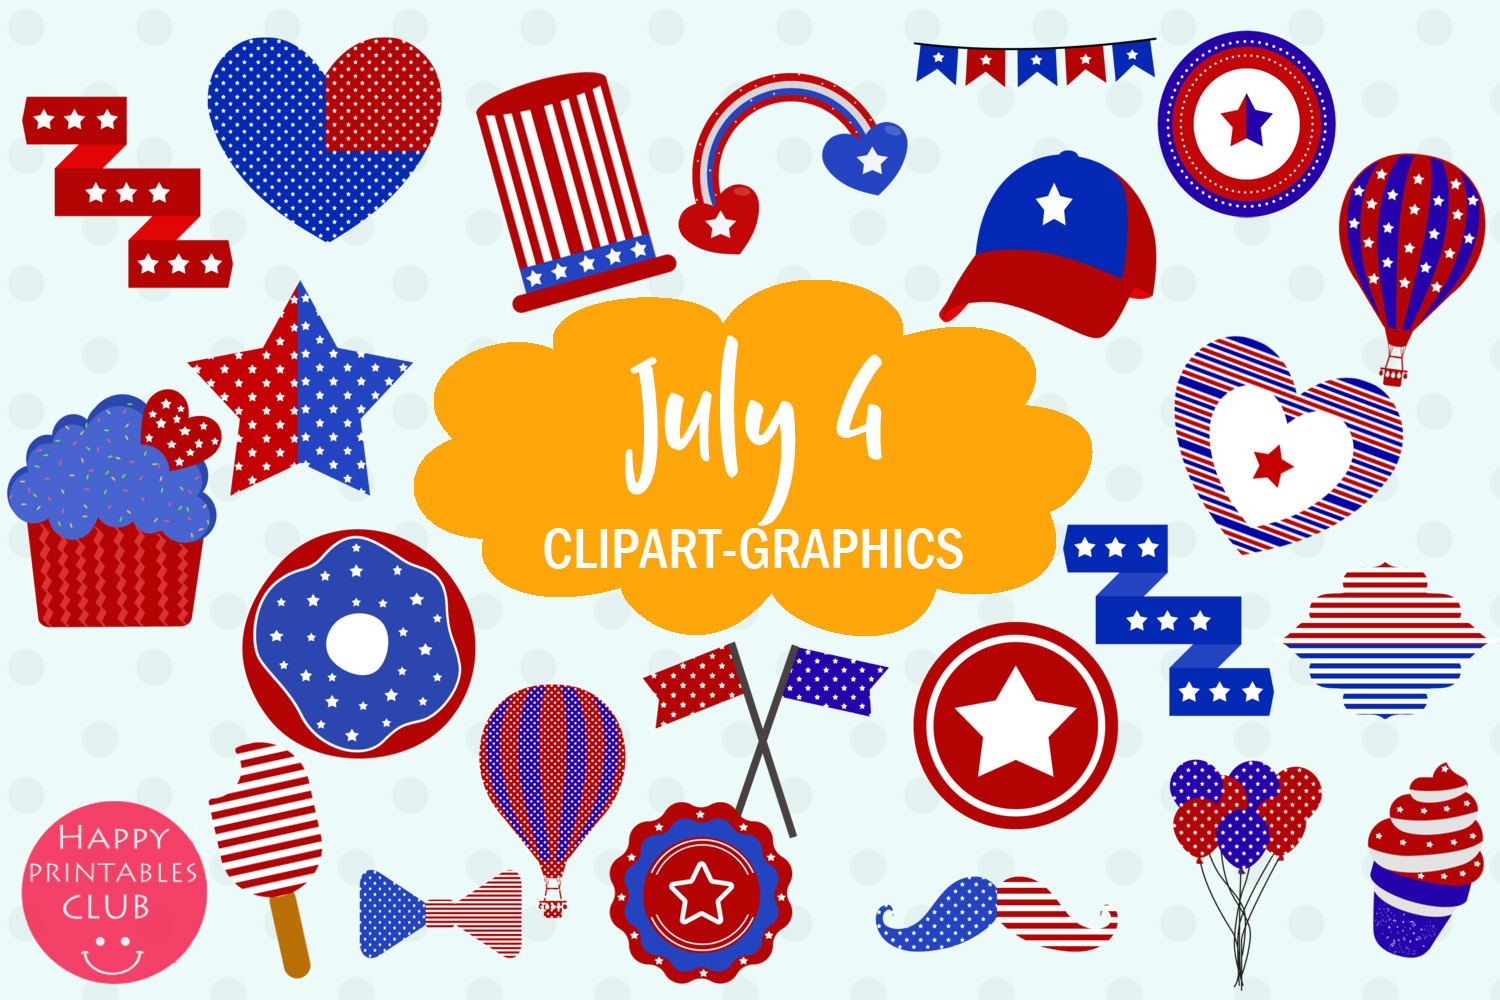 July 4 Patriotic Clipart Graphics Graphic by Happy Printables Club.